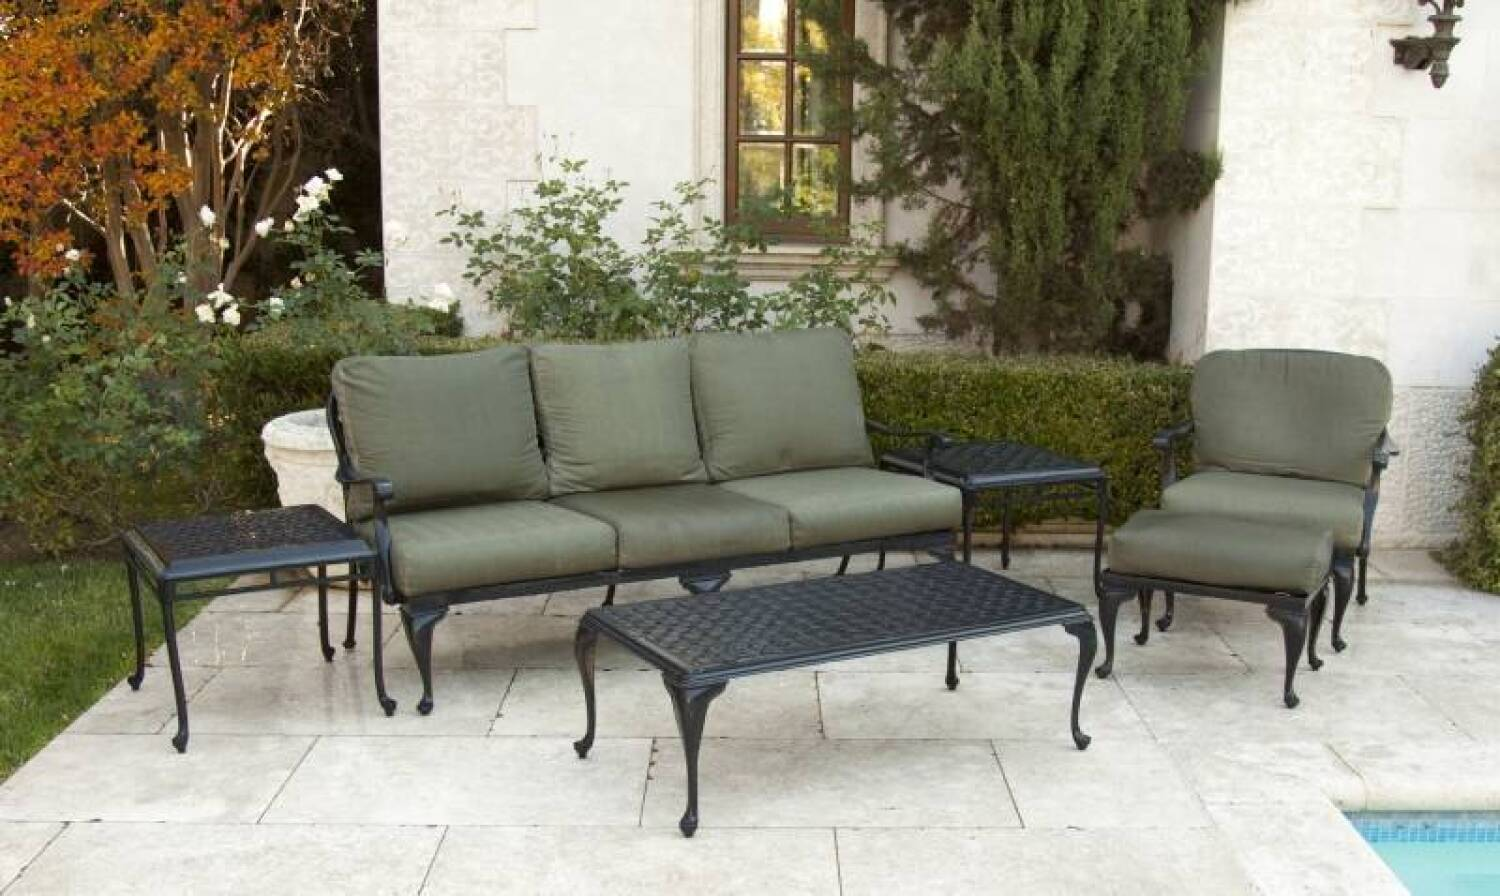 Group Of Smith And Hawken Patio Furniture Price Estimate 800